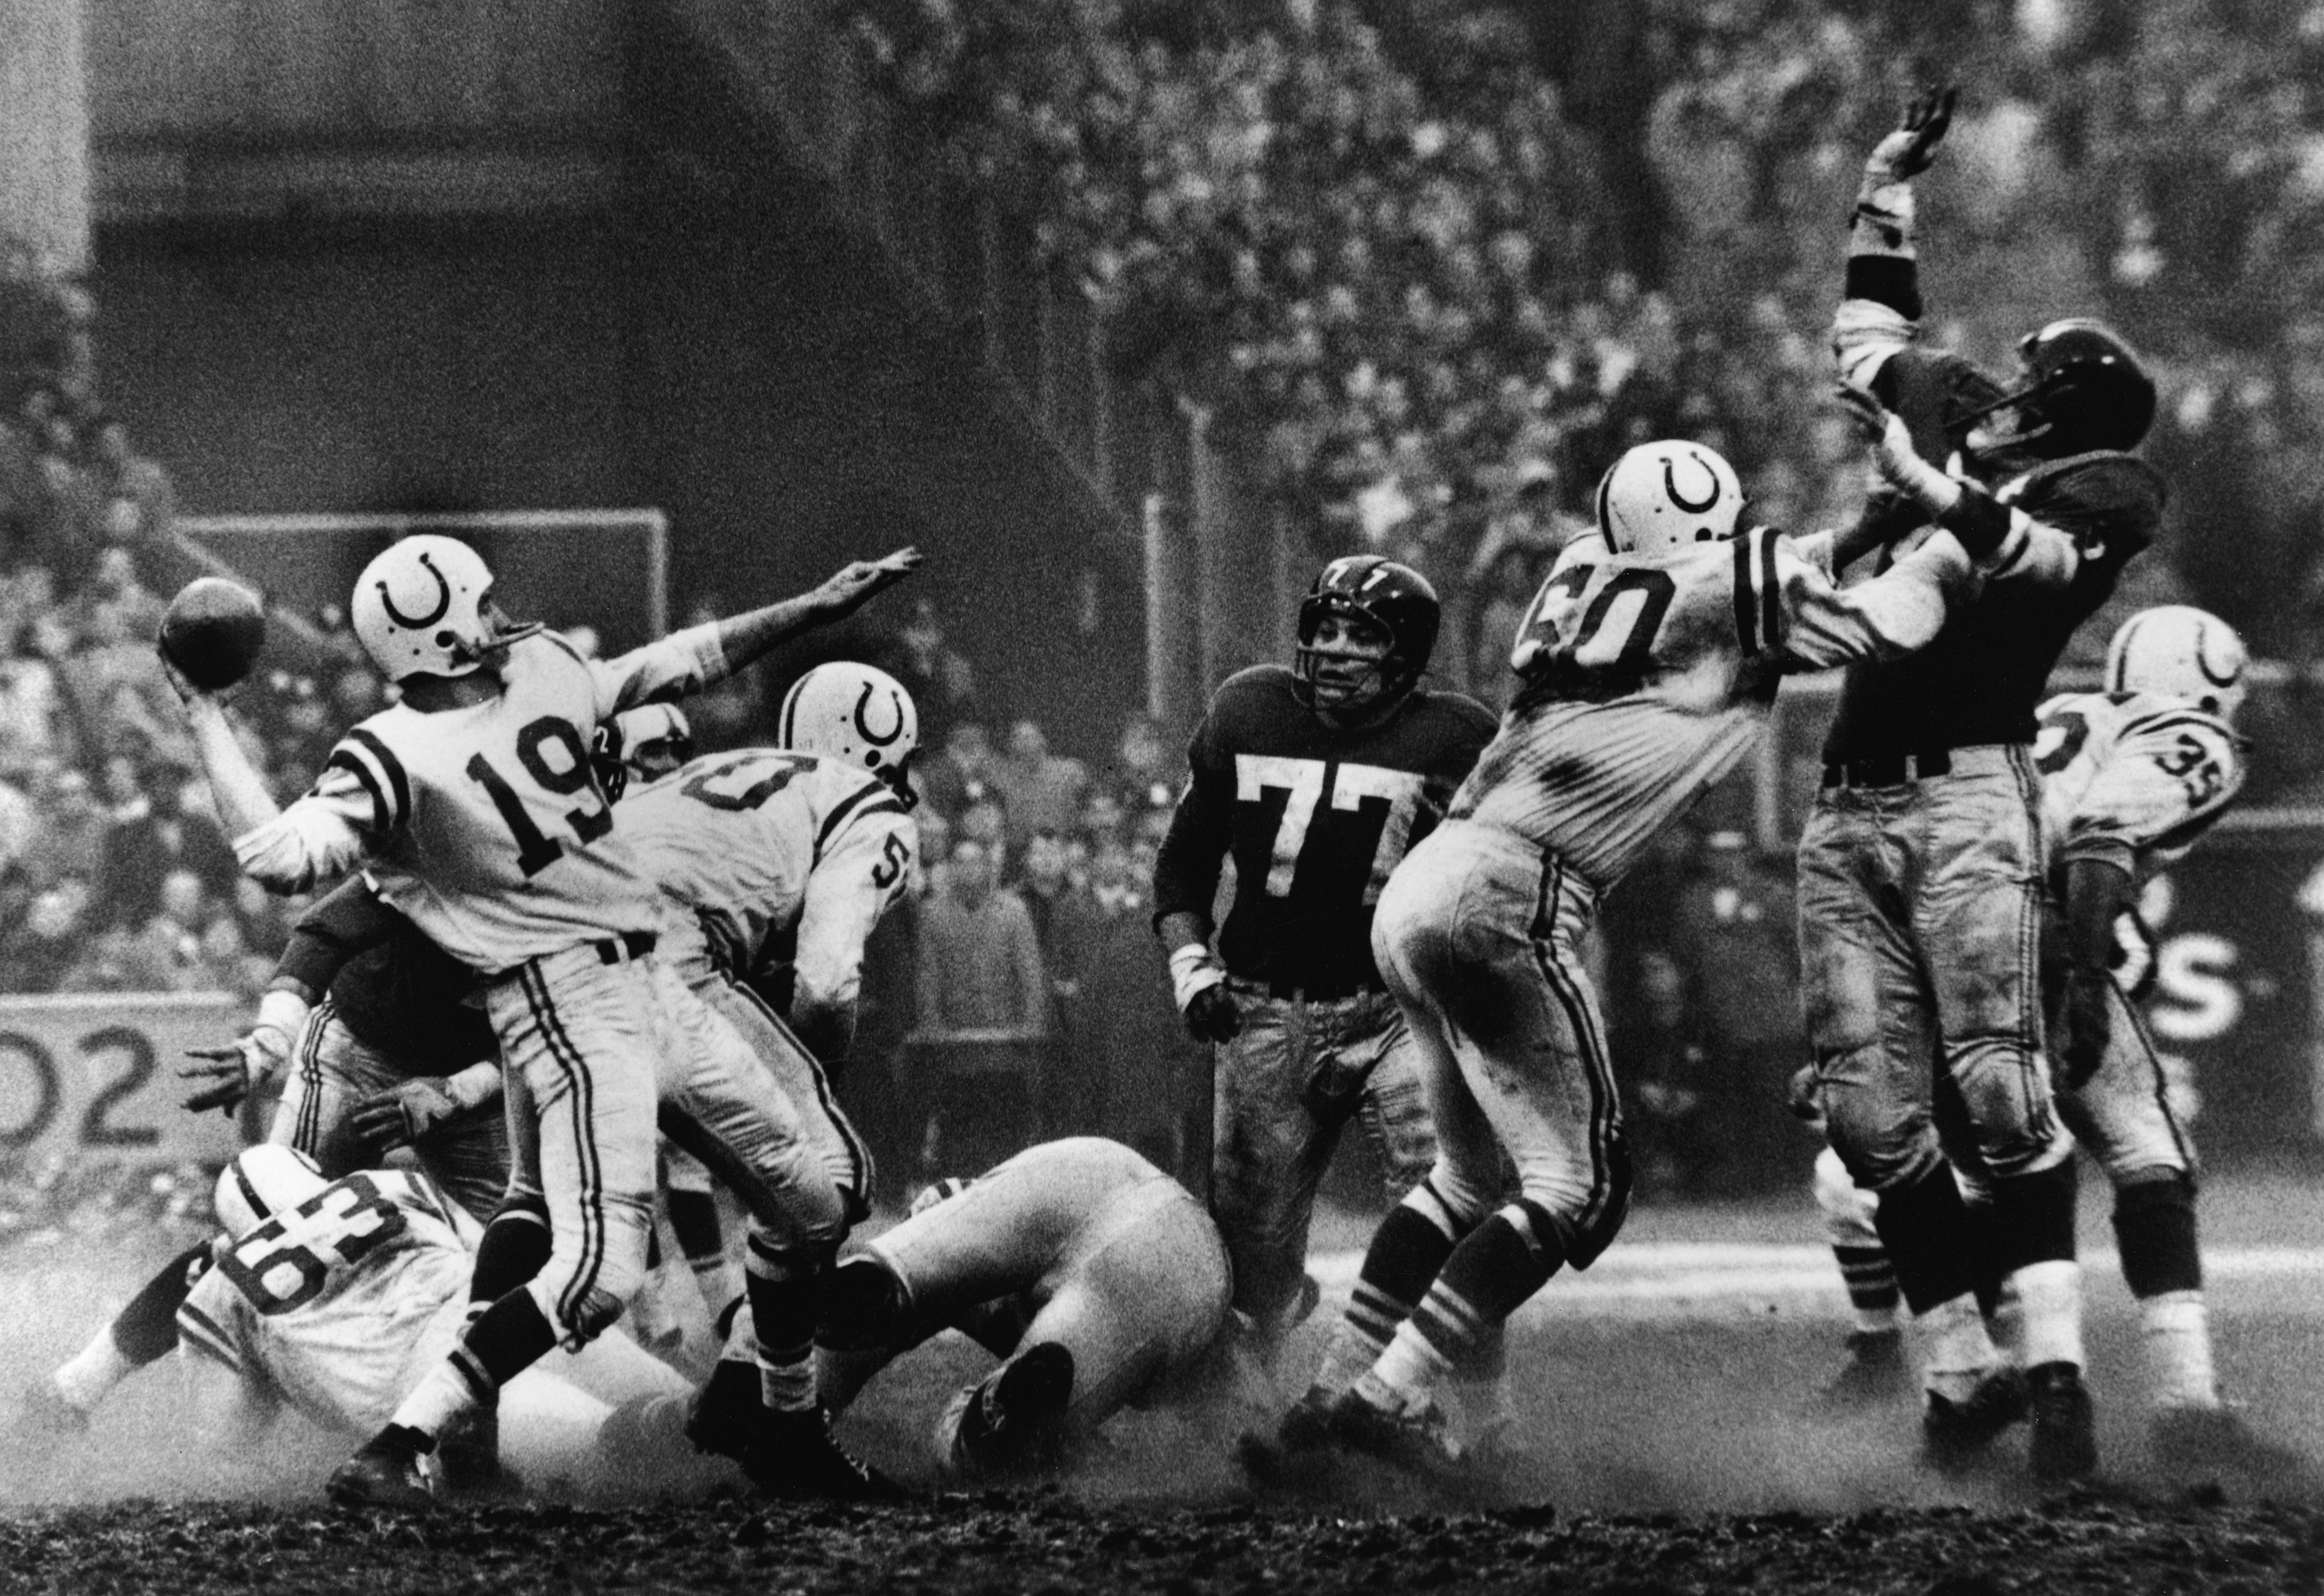 https://fansided.com/wp-content/uploads/getty-images/2016/09/53323949-unitas-in-sudden-death.jpg